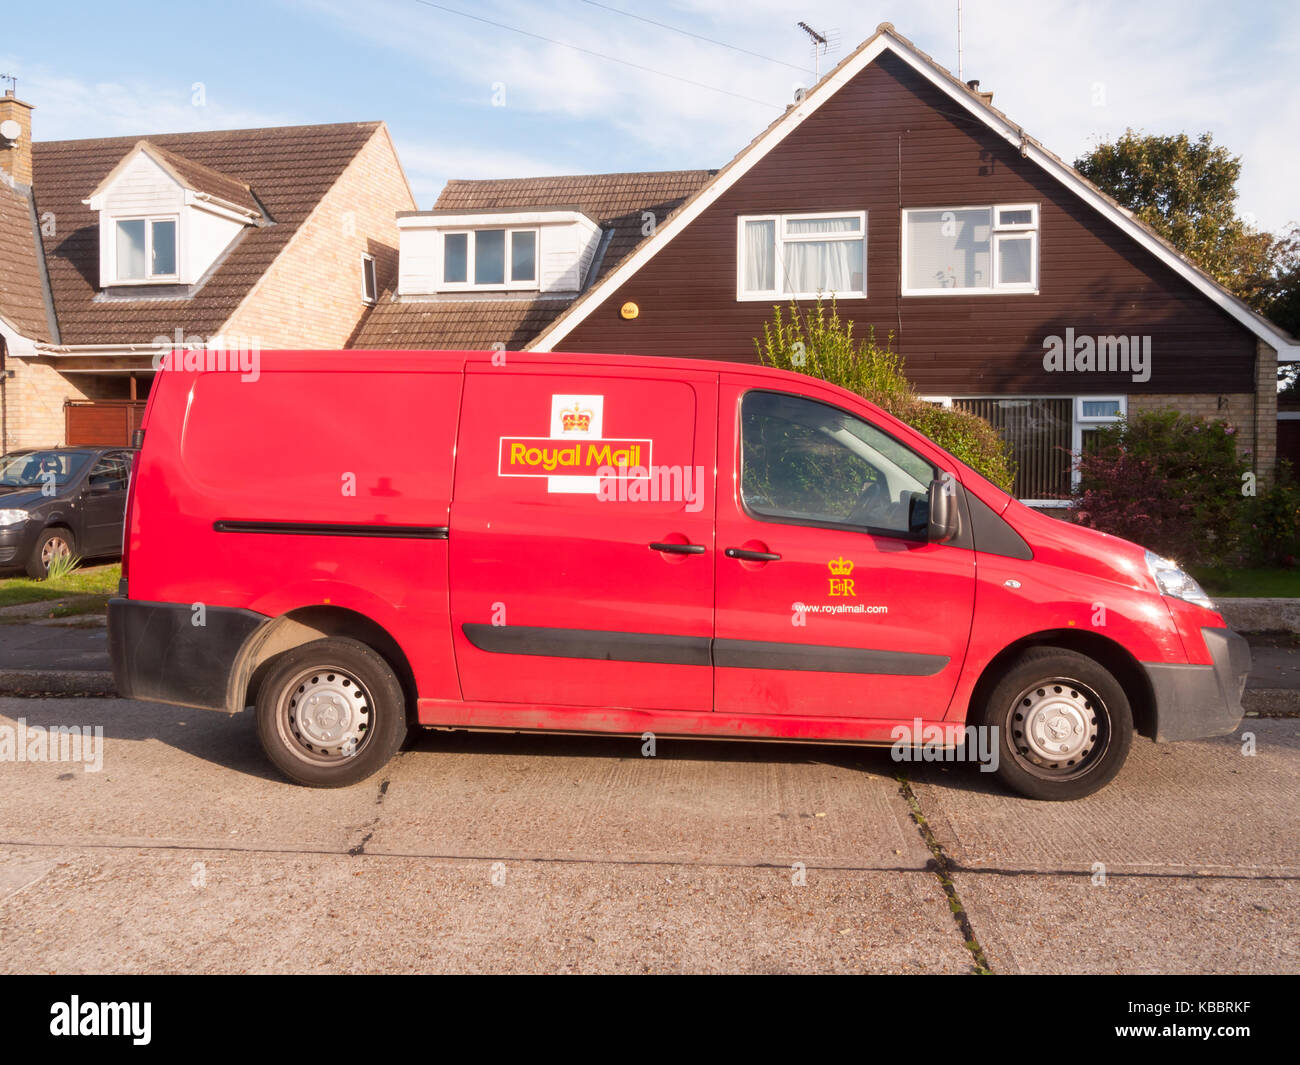 royal mail post red van parked side view; Essex; England; UK - Stock Image